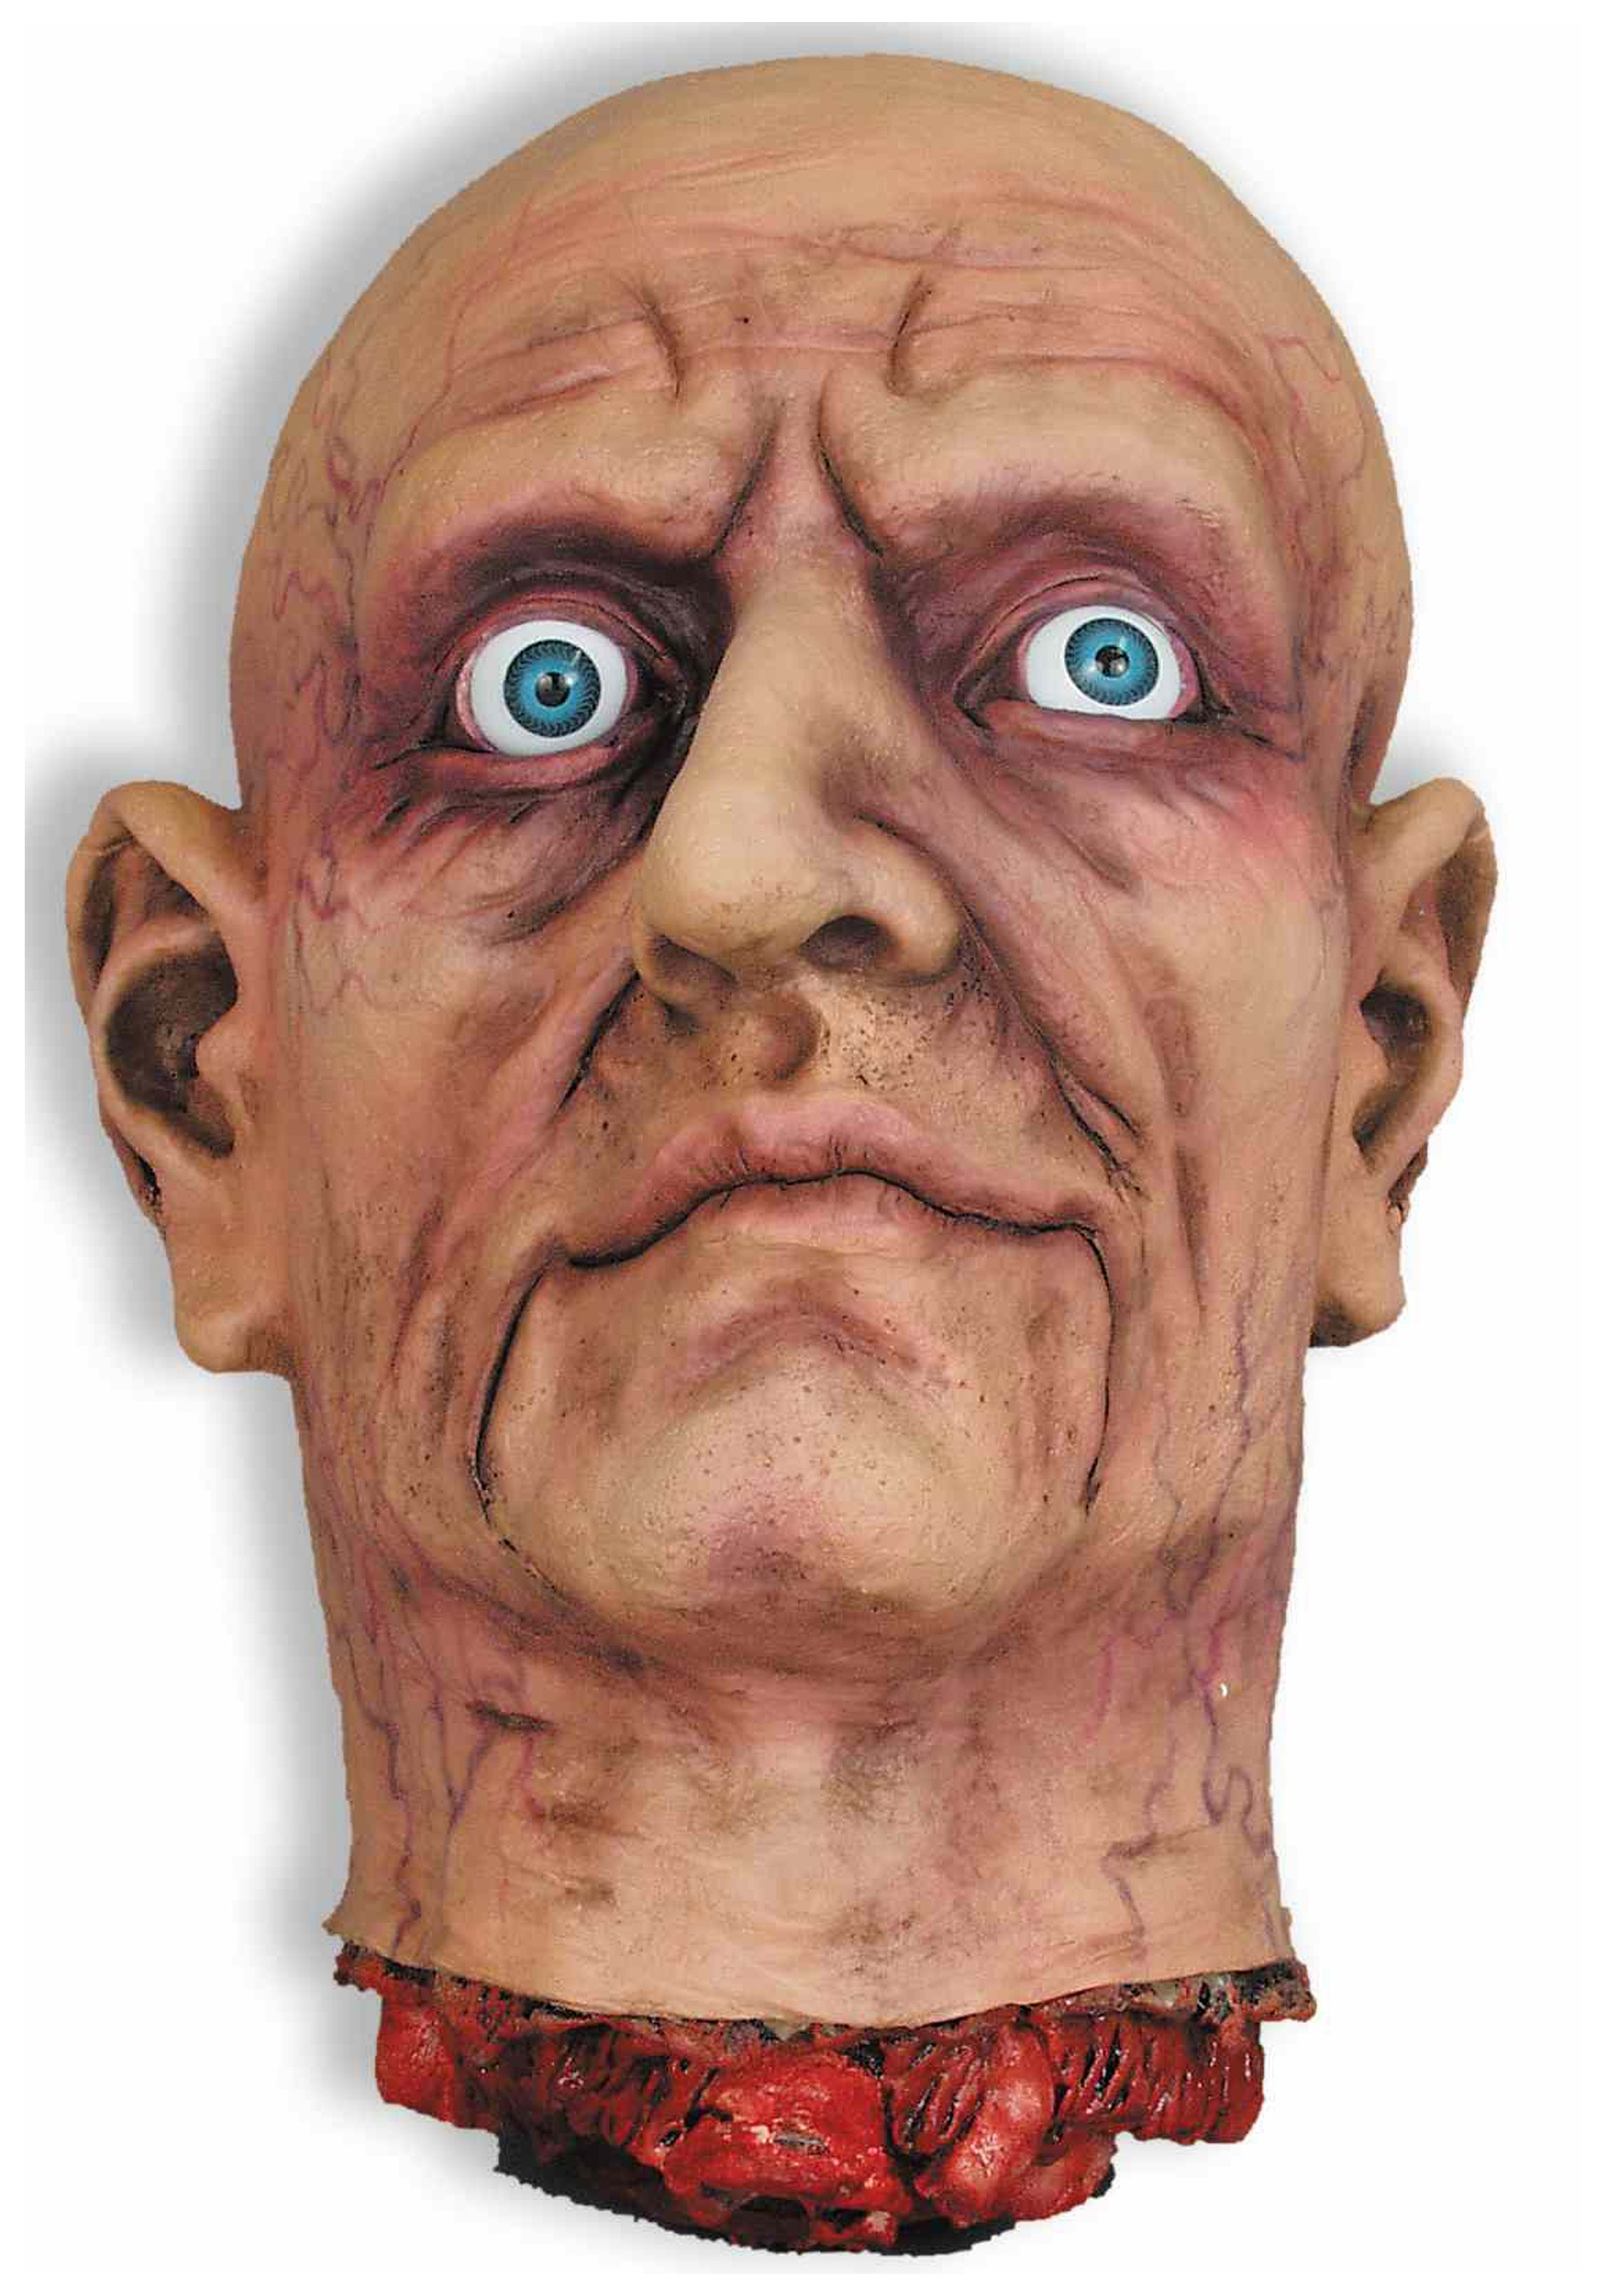 Large Open Eye Cut Off Head - Scary Decorations, Halloween Accessories